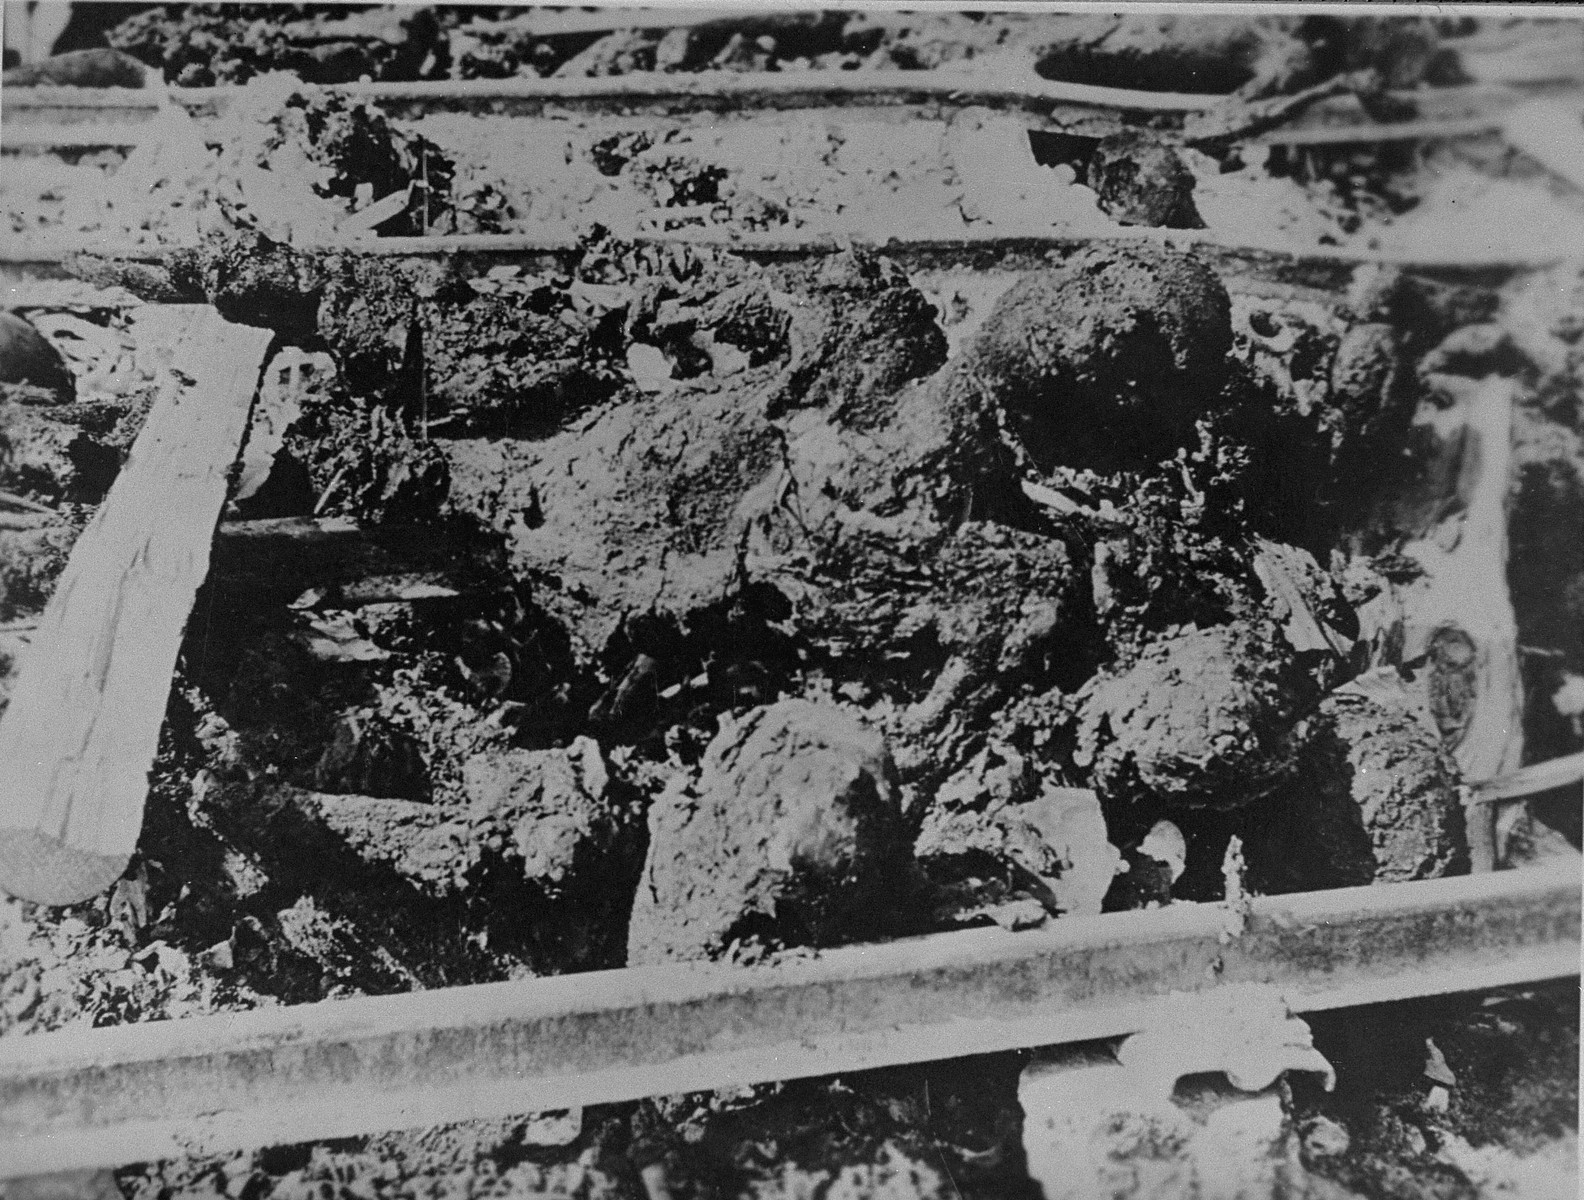 Partially burned corpses left by the hastily retreating Nazis.